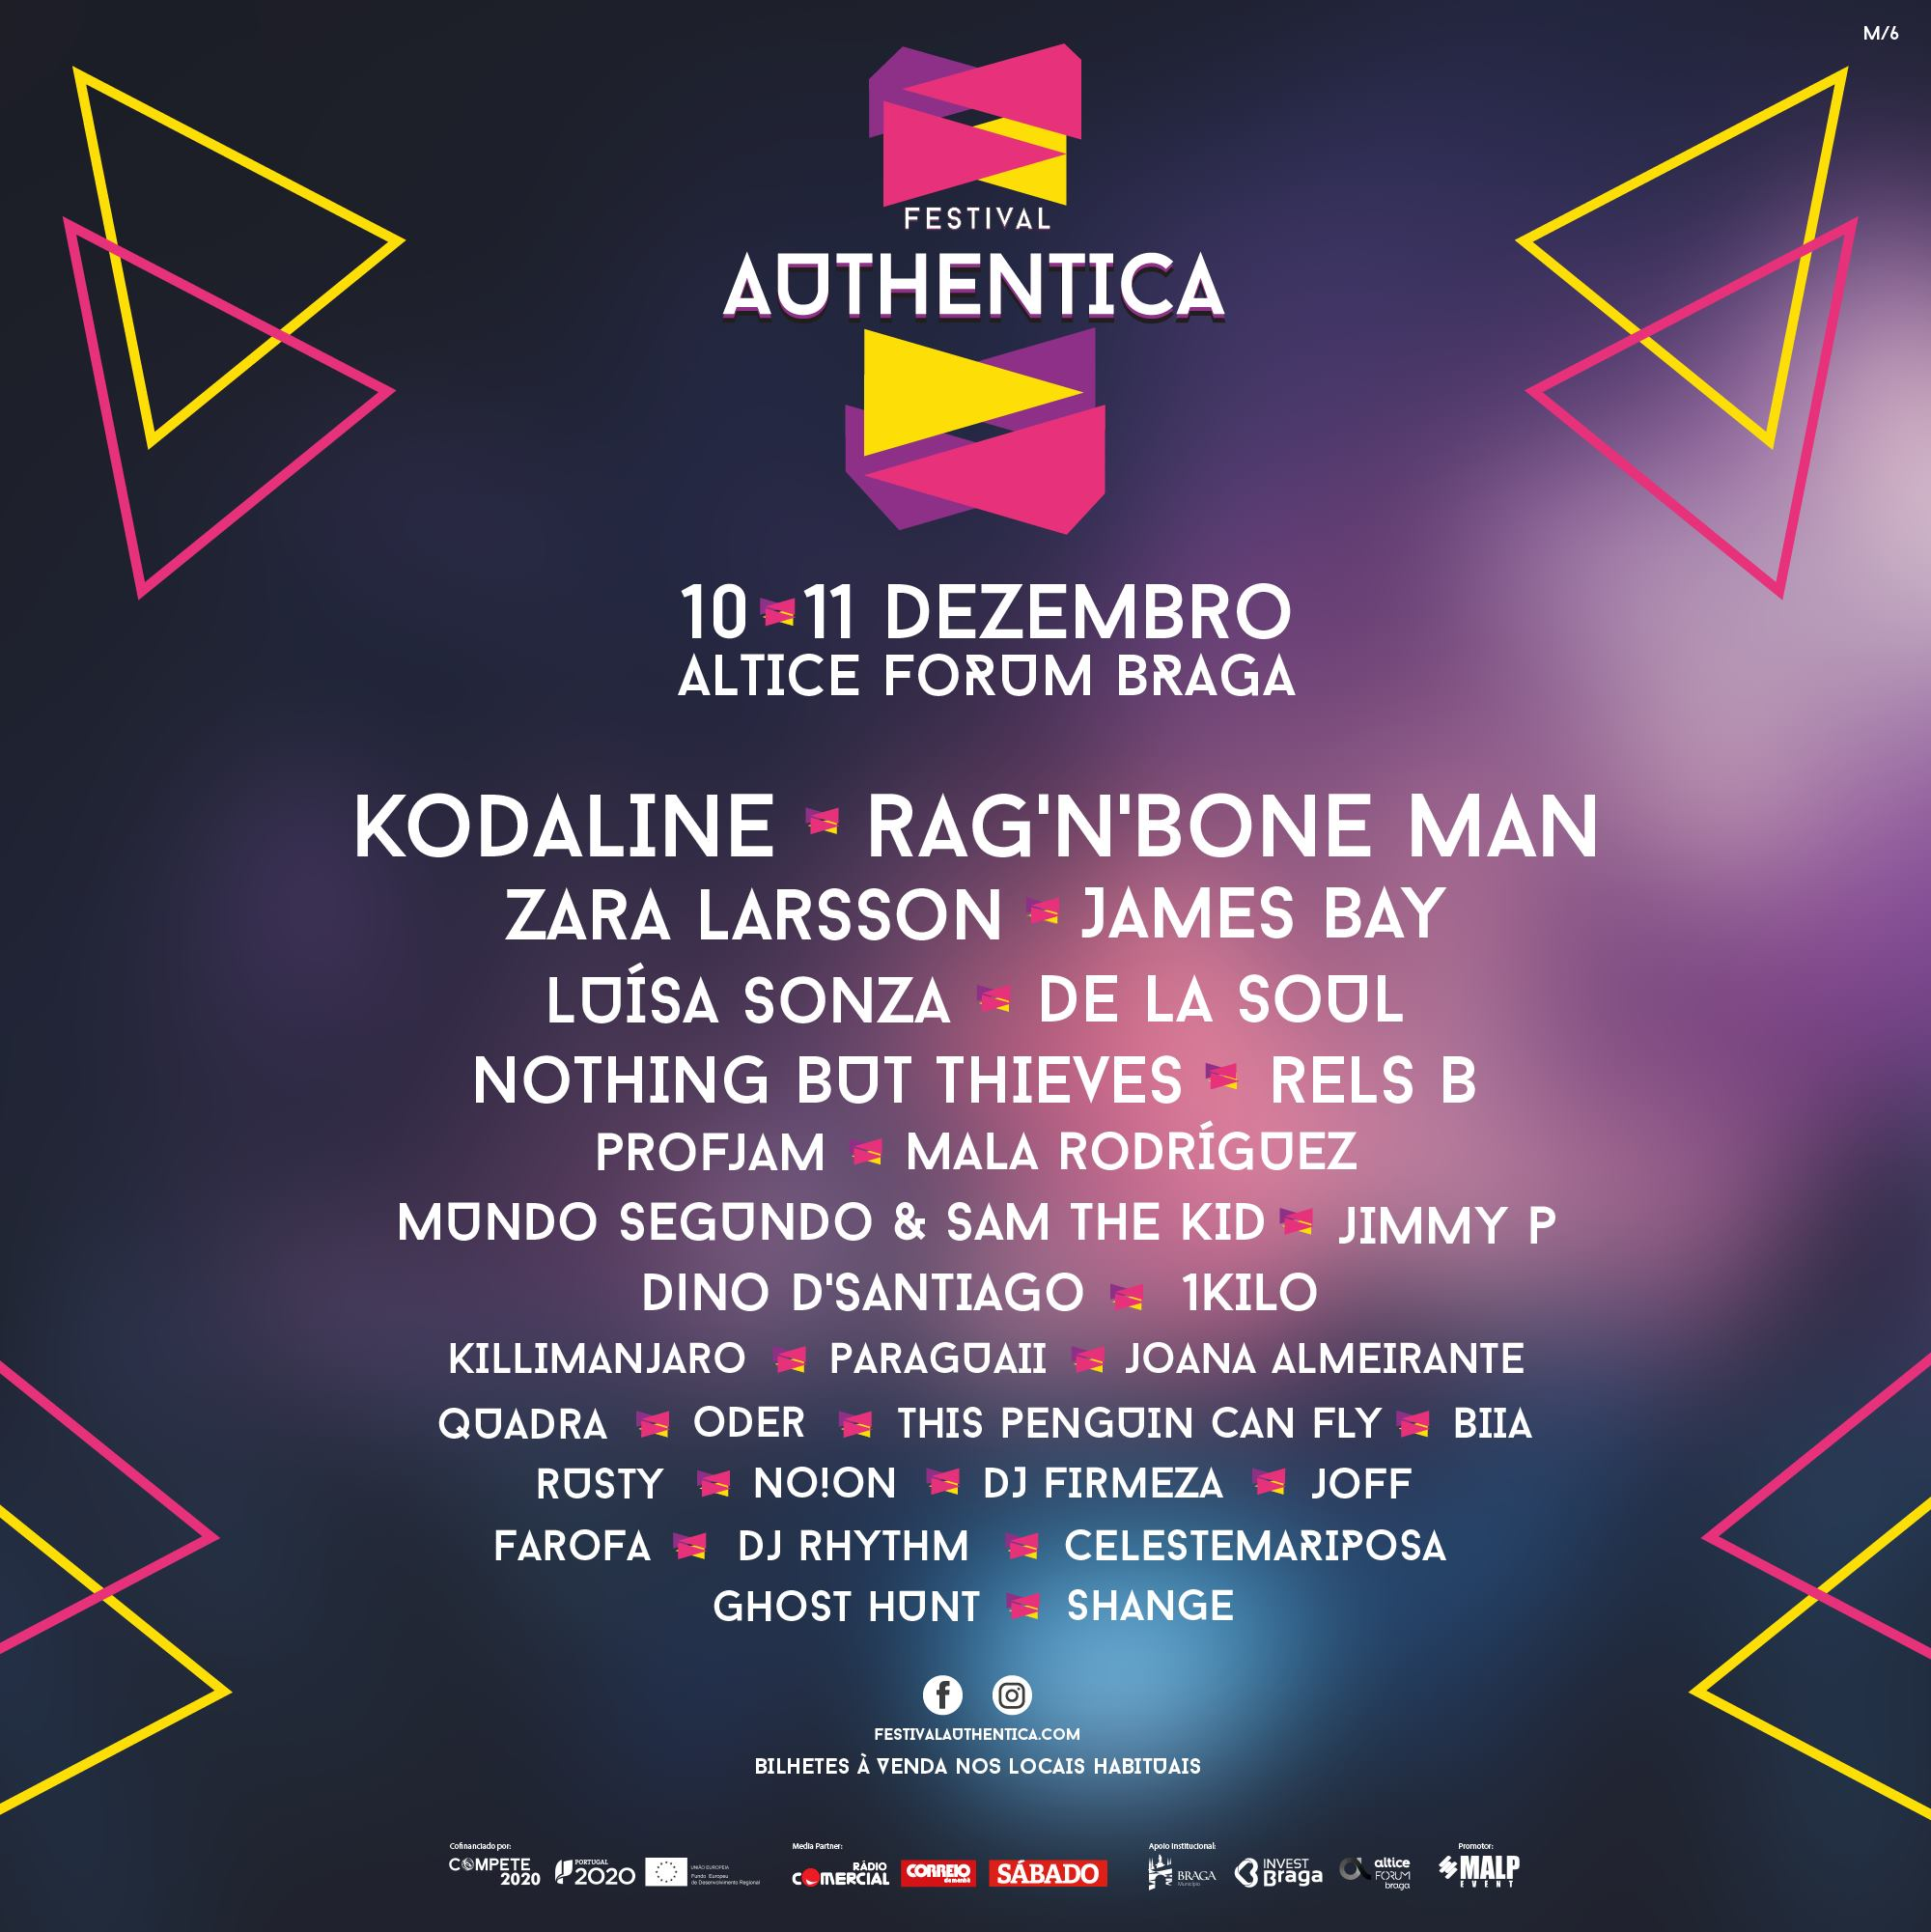 New 18,000-capacity festival launching in Portugal 1